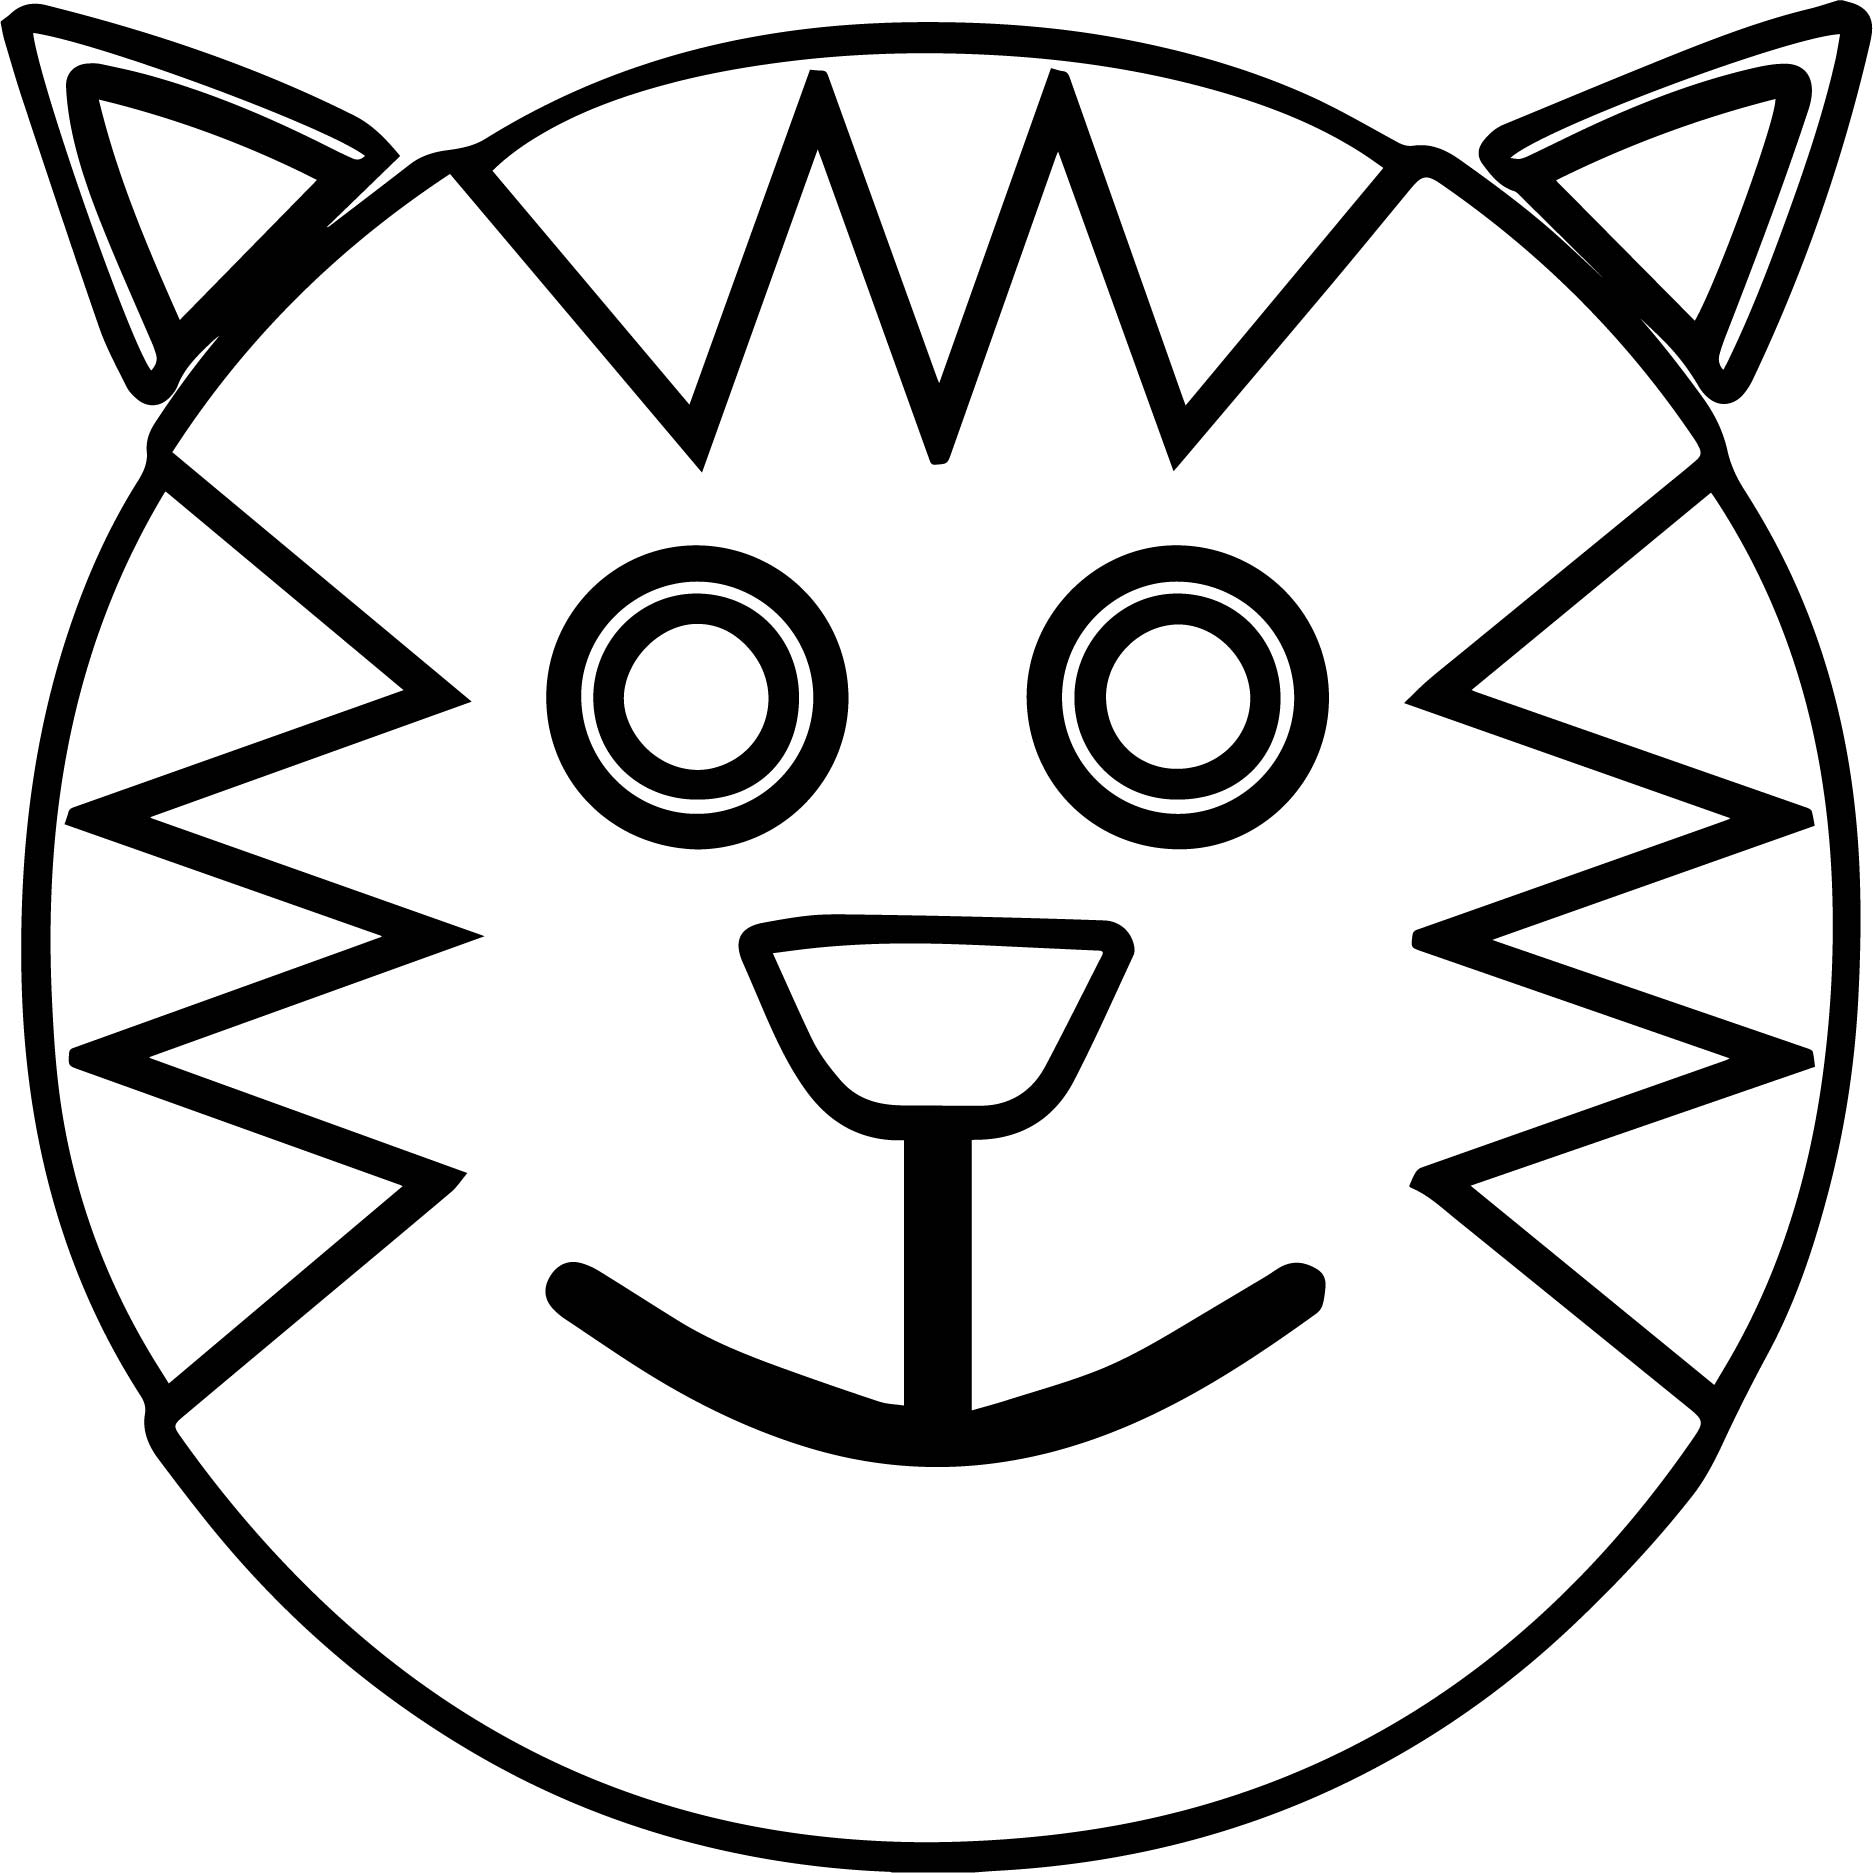 Smiling Face Coloring Page At Getcolorings